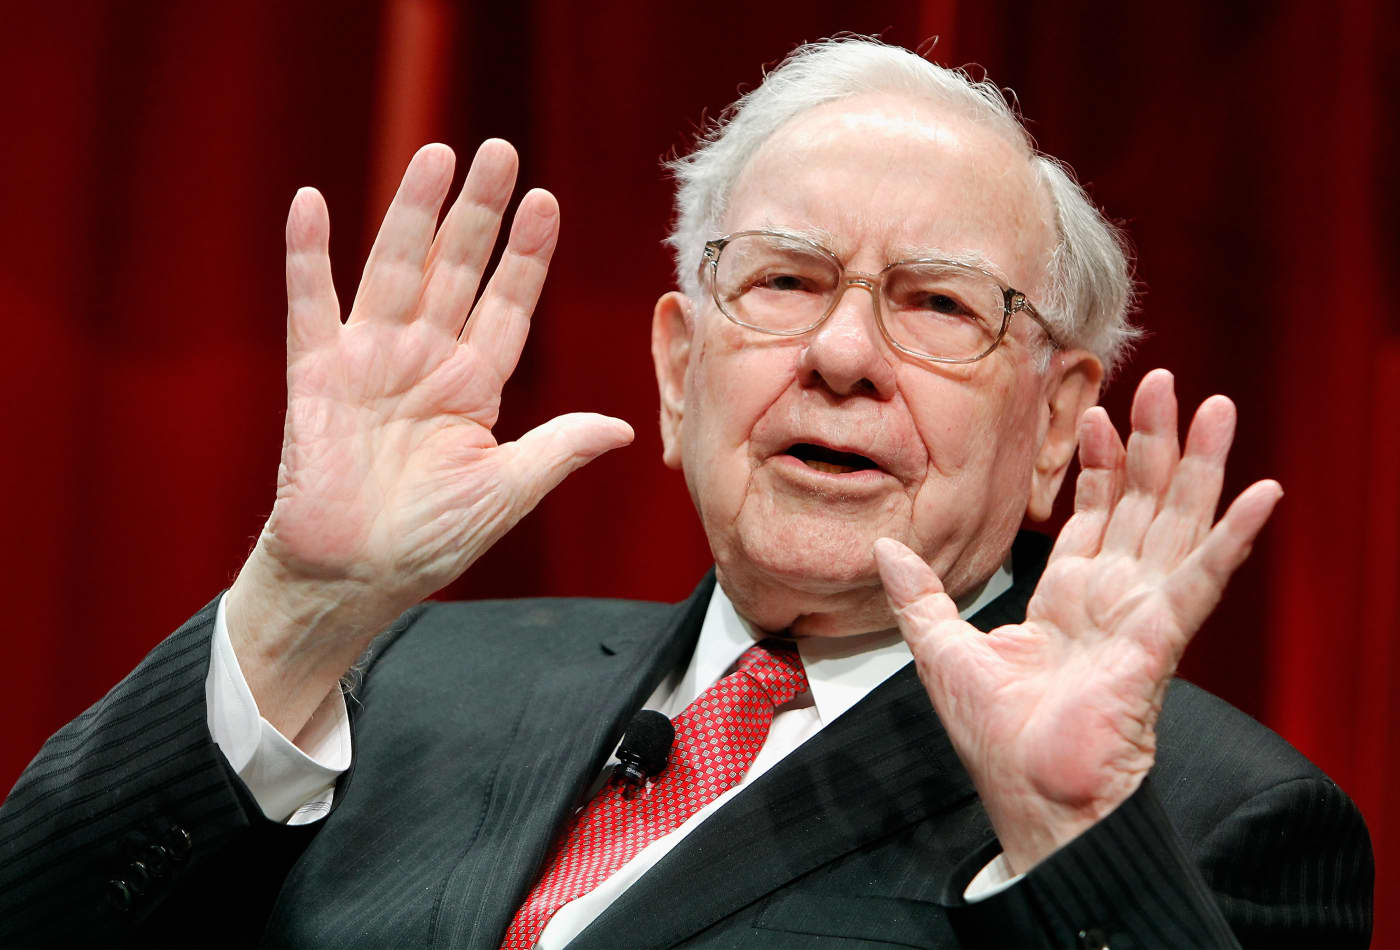 Warren Buffett: This is the 'most surprising' lesson I didn't learn in business school